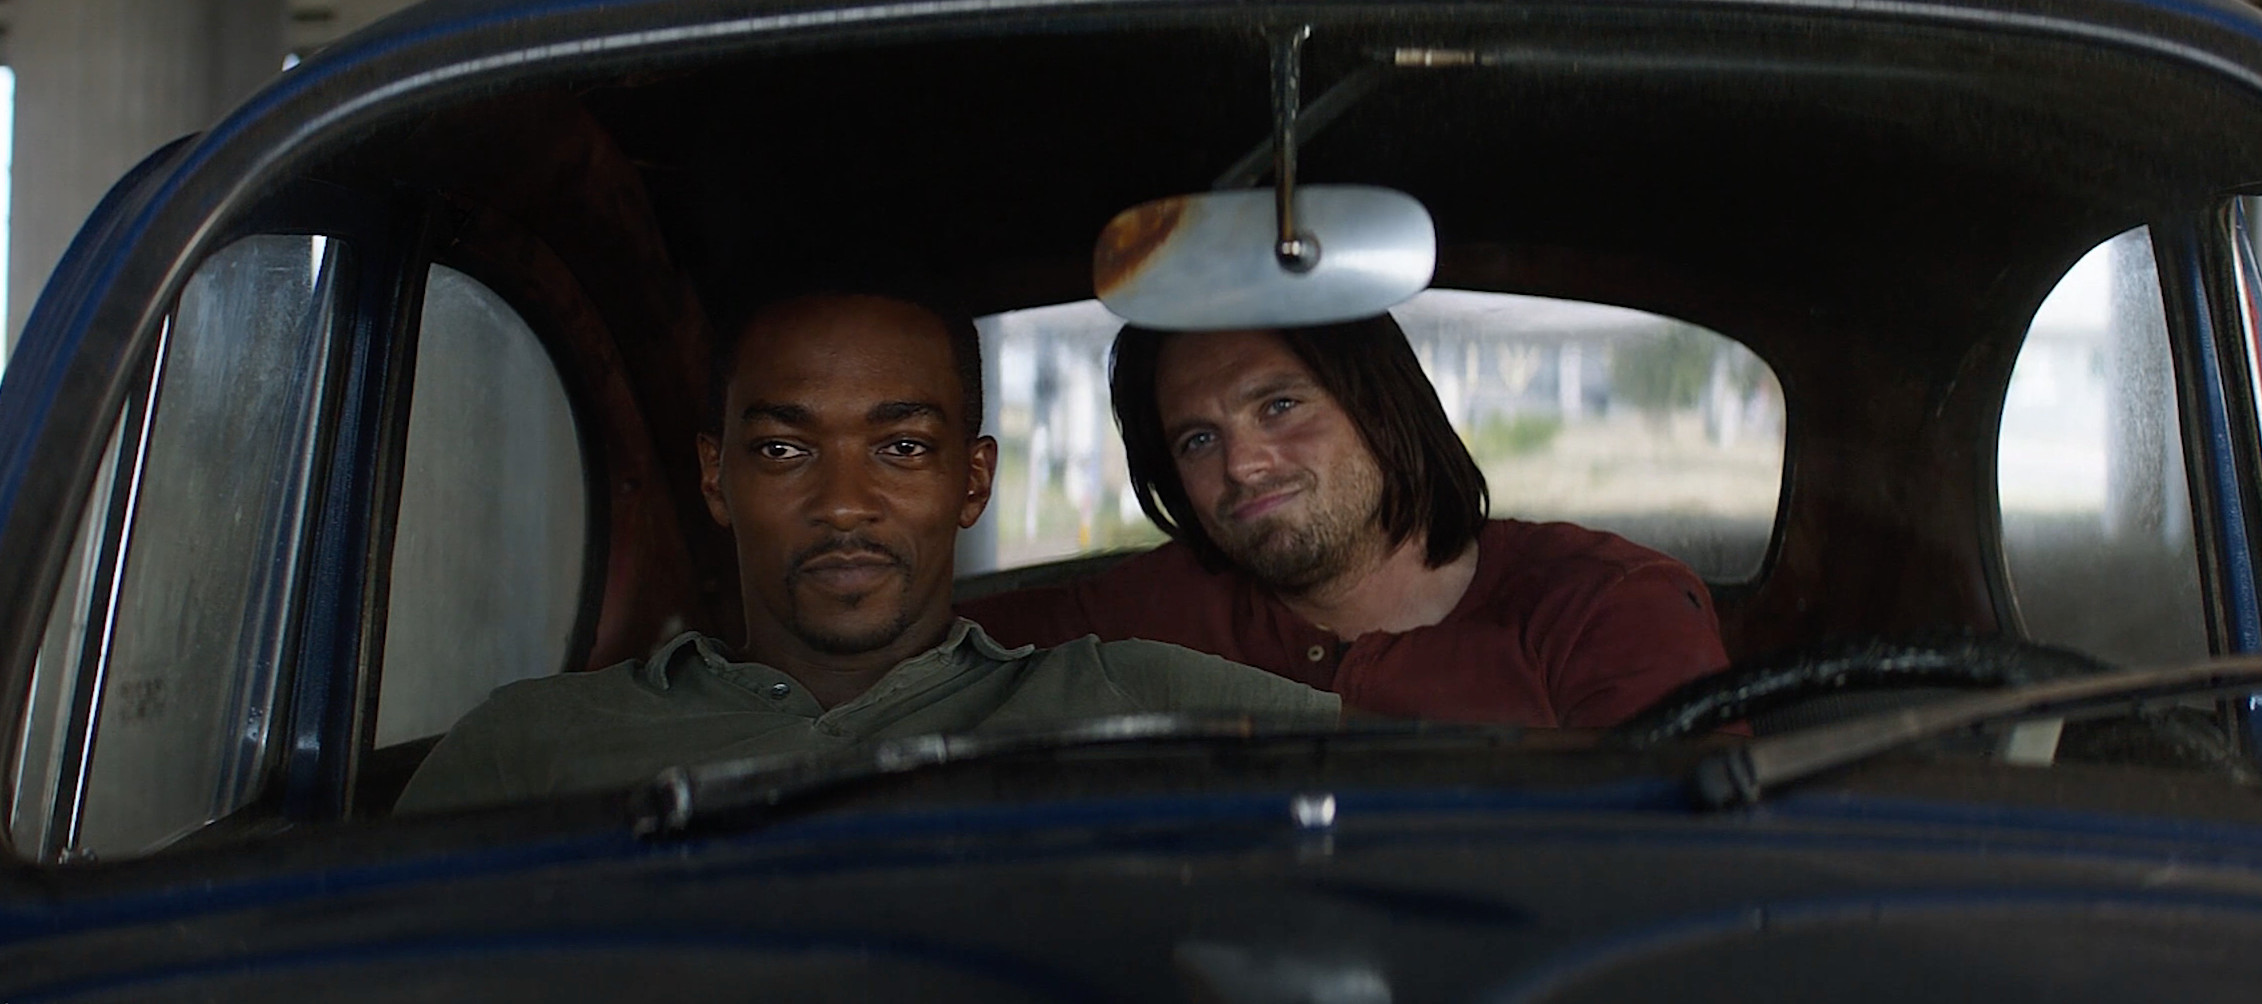 bucky-falcon-civil-war